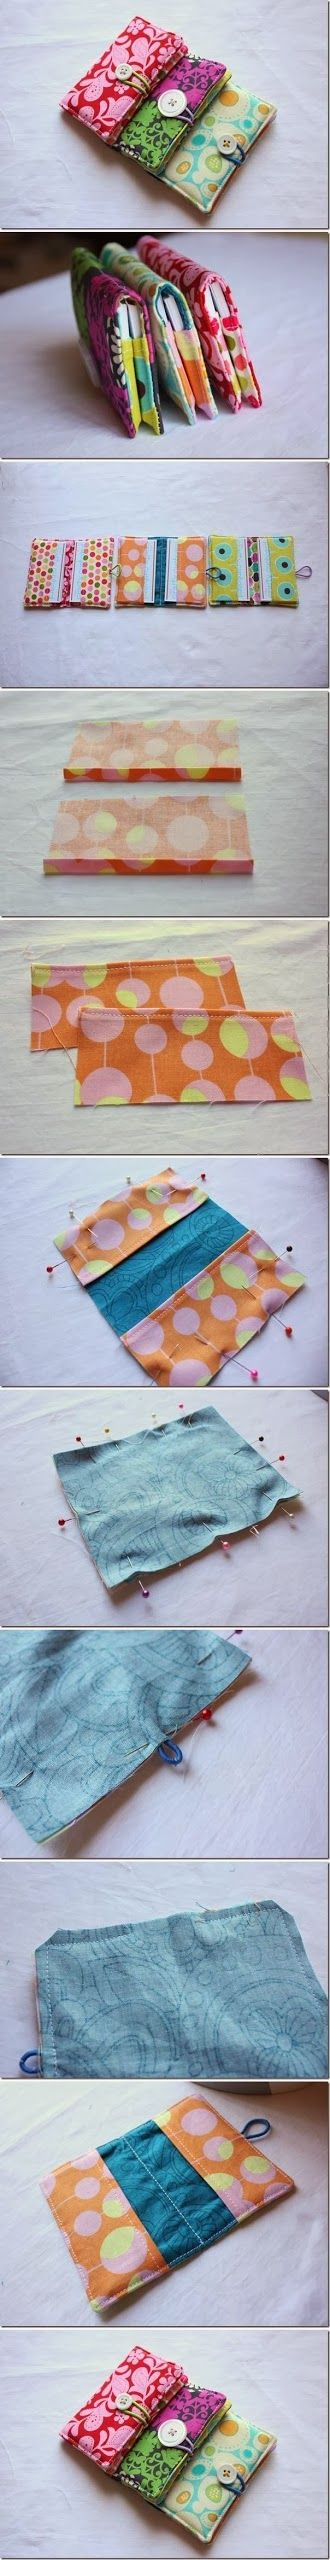 diy-sew-business-card-holder